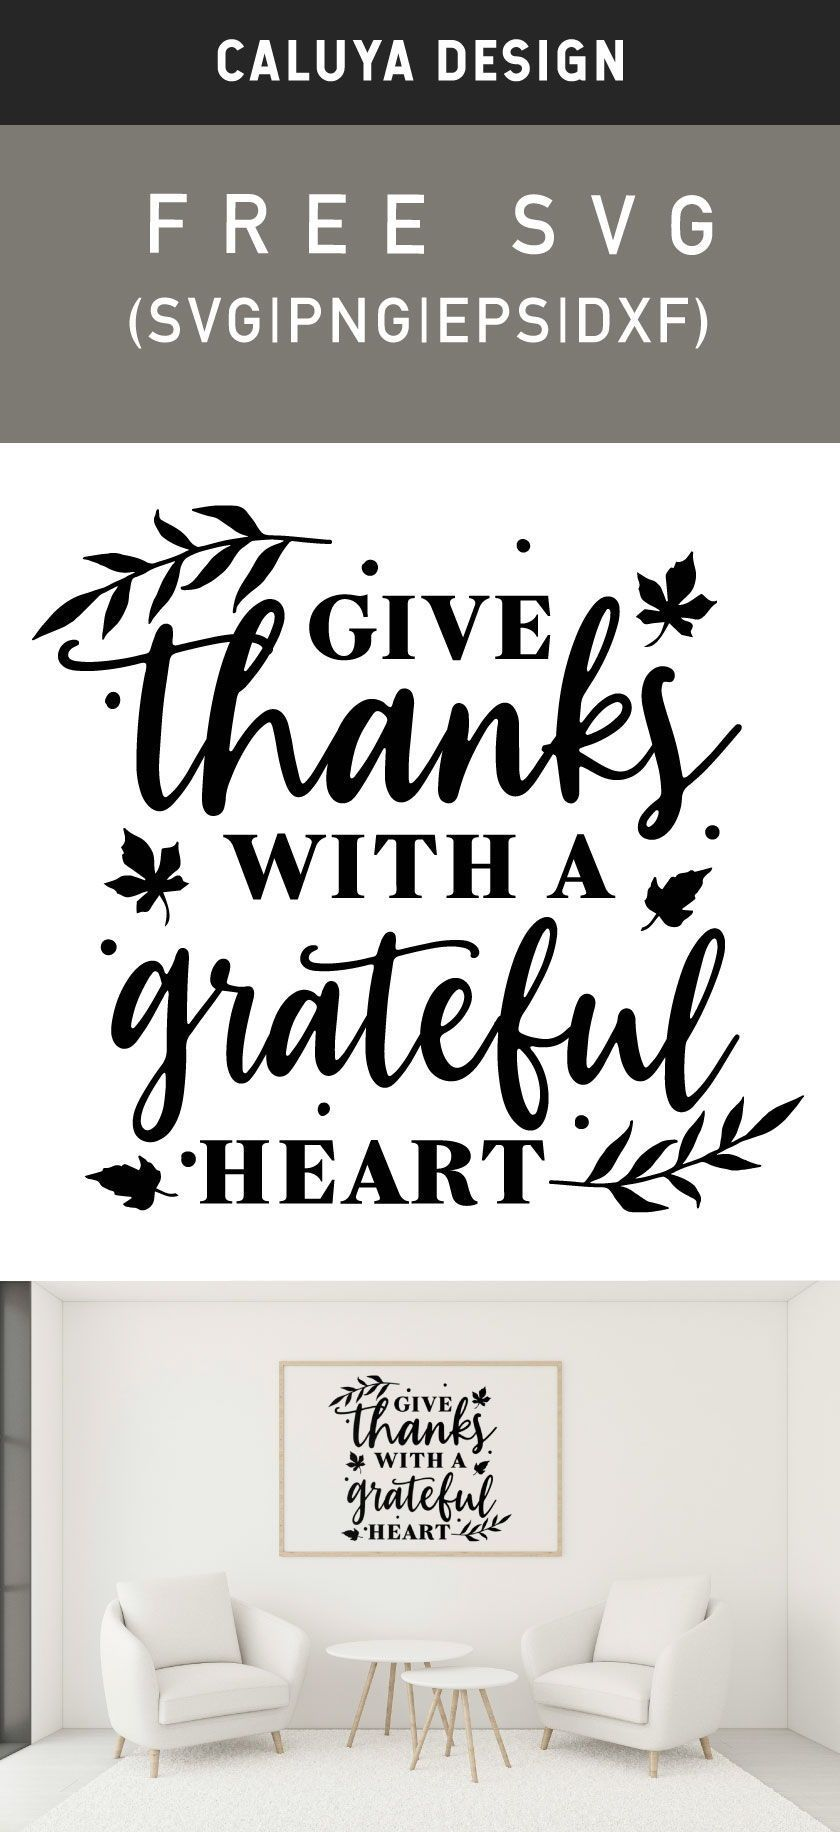 Free Give Thanks With A Grateful Heart Svg Png Eps Dxf In 2020 Give Thanks How To Make Planner Free Printable Clip Art